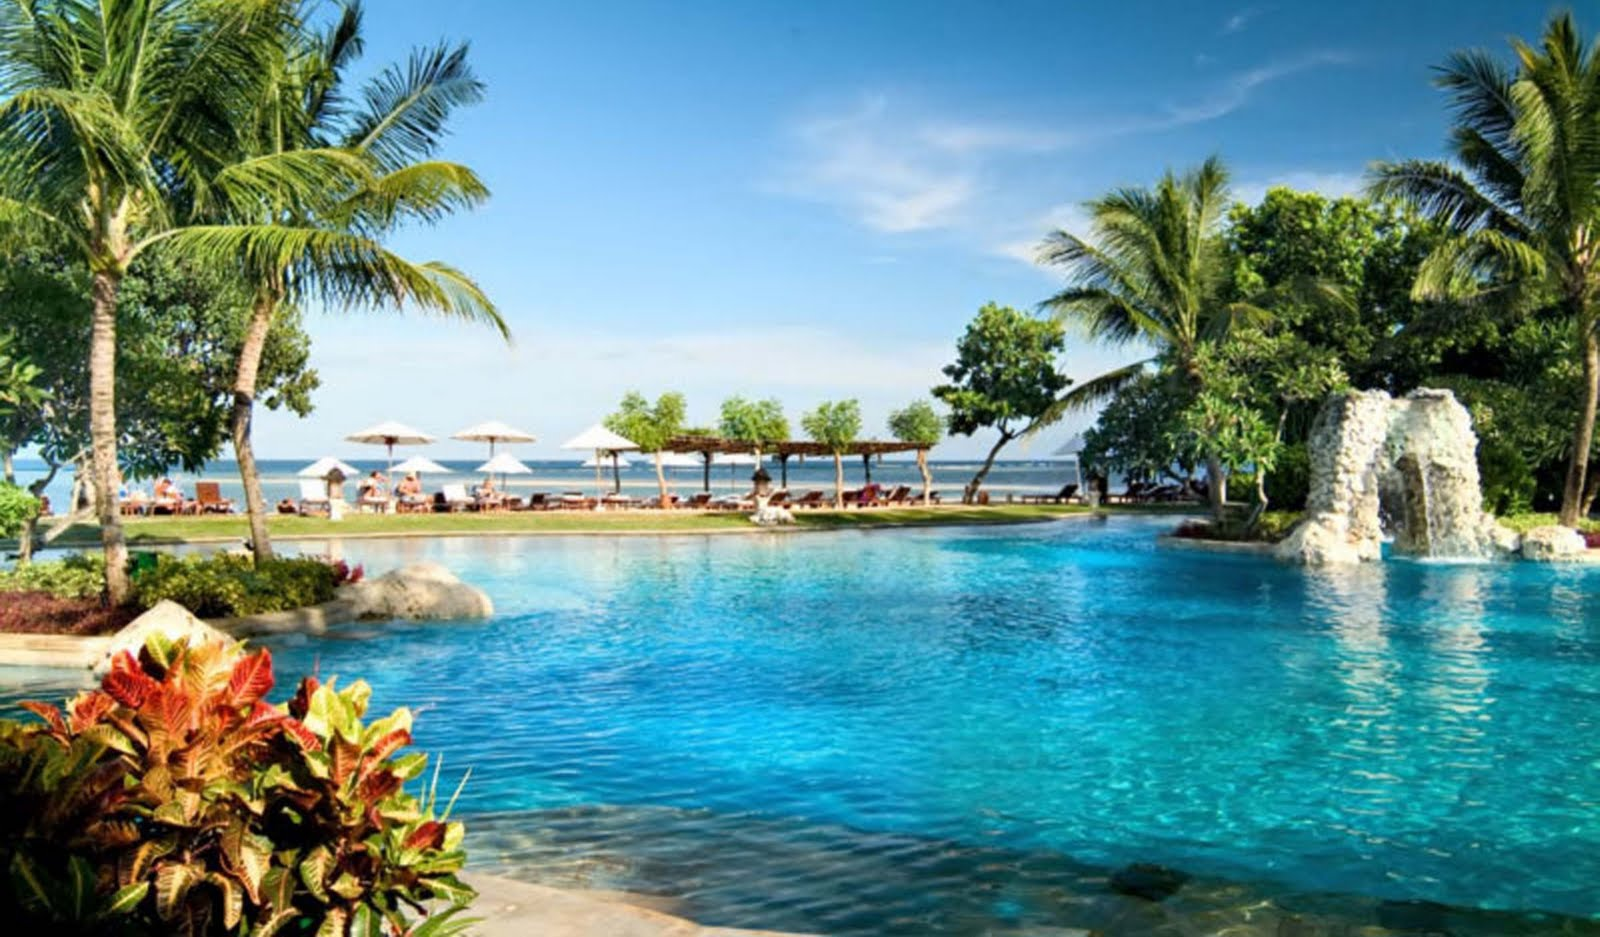 Lombok Indonesia-Cheap Tour Package - Cheap Vacation ...